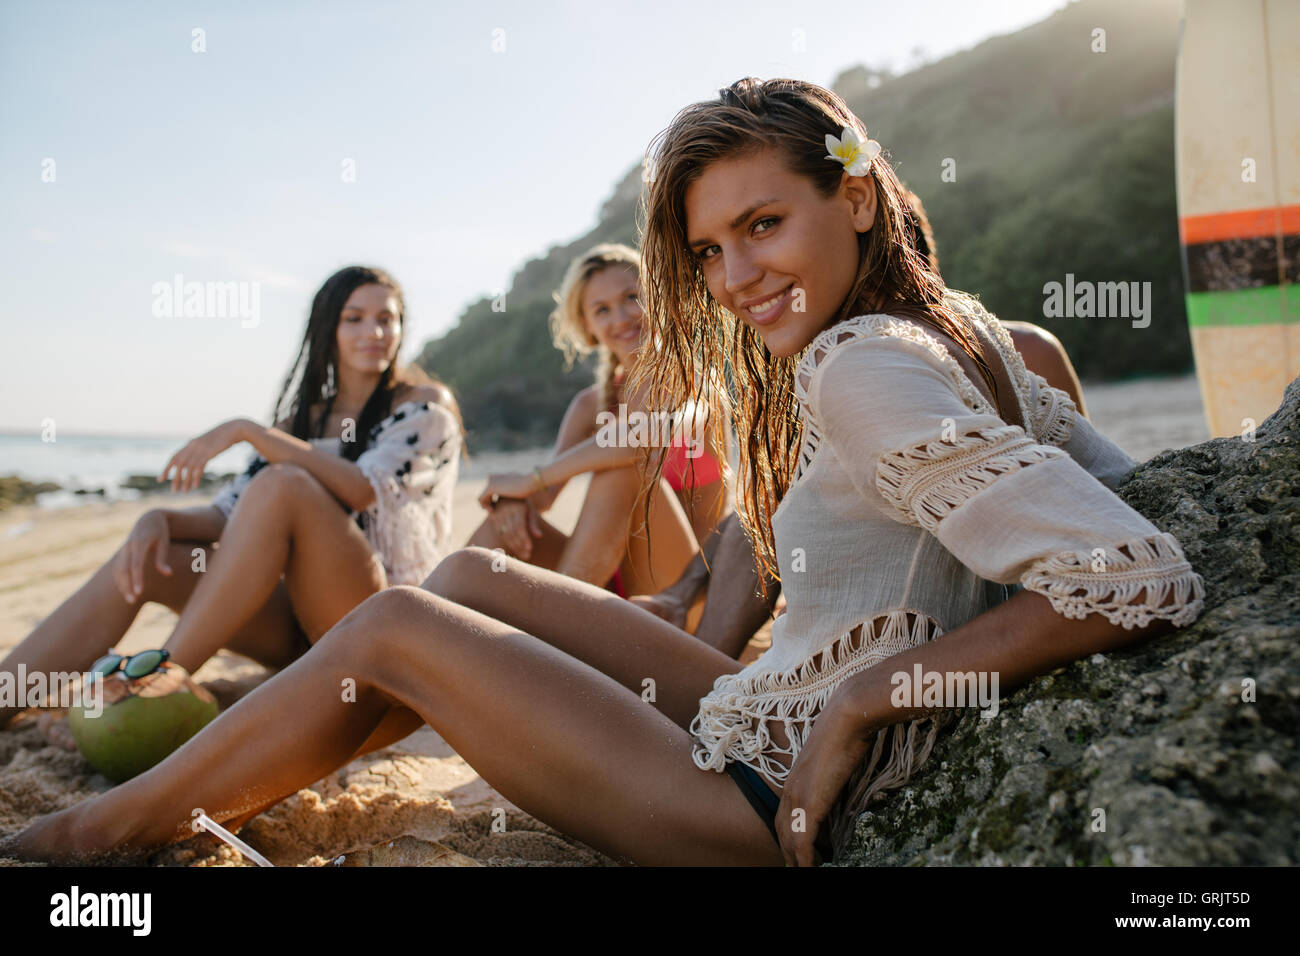 Happy young woman sitting on the beach with her friends in background. Group of friends enjoying on beach holiday. - Stock Image